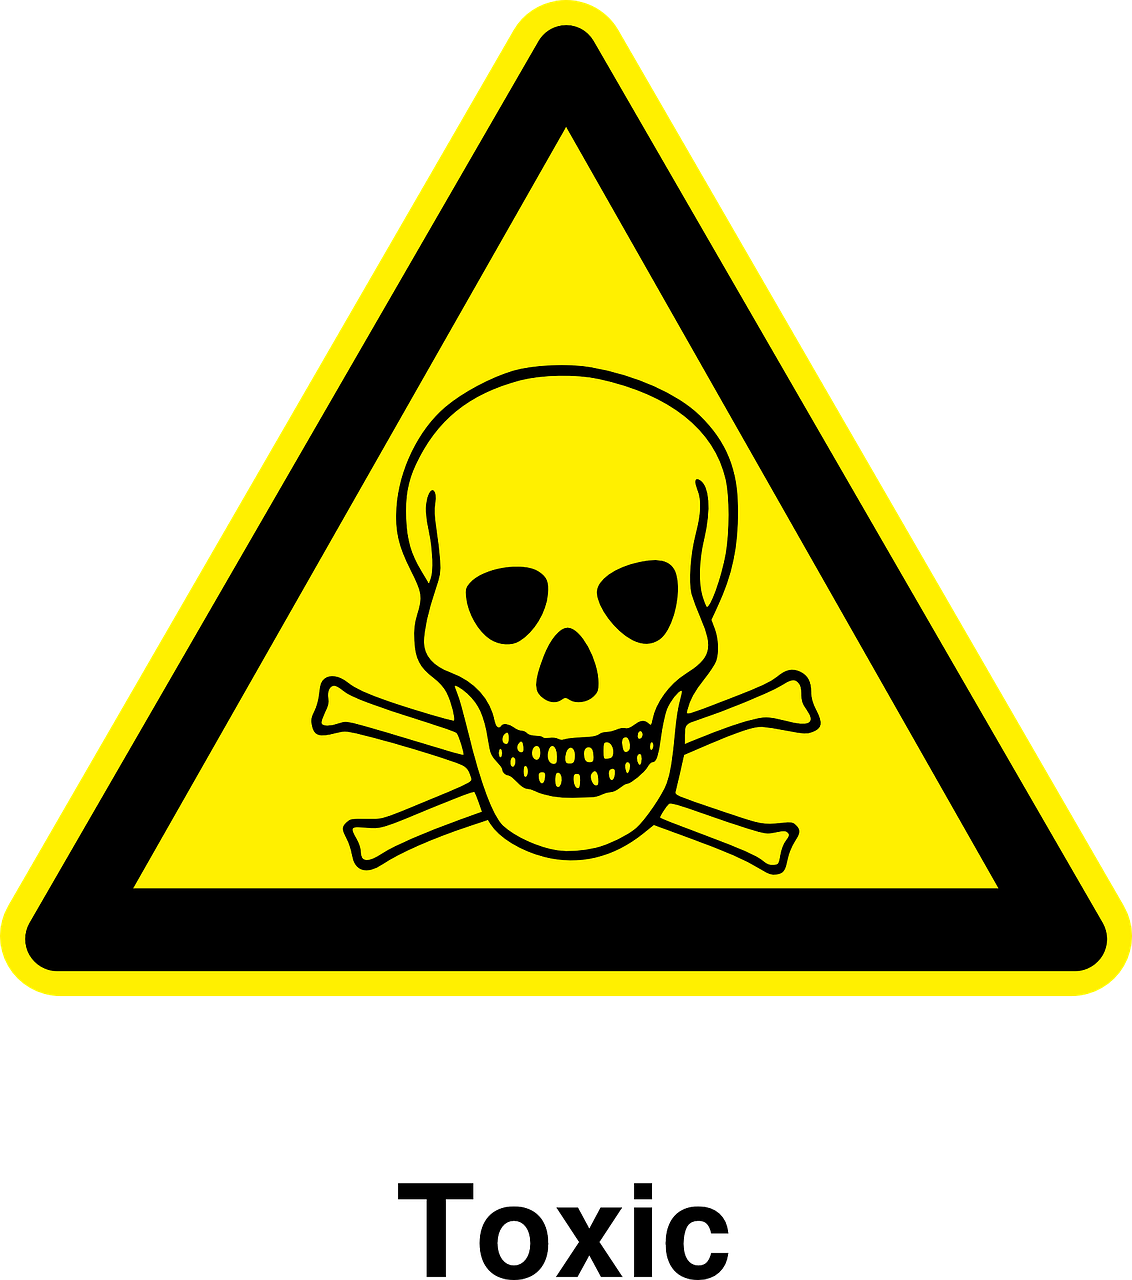 toxic sign and skulls - photo #8